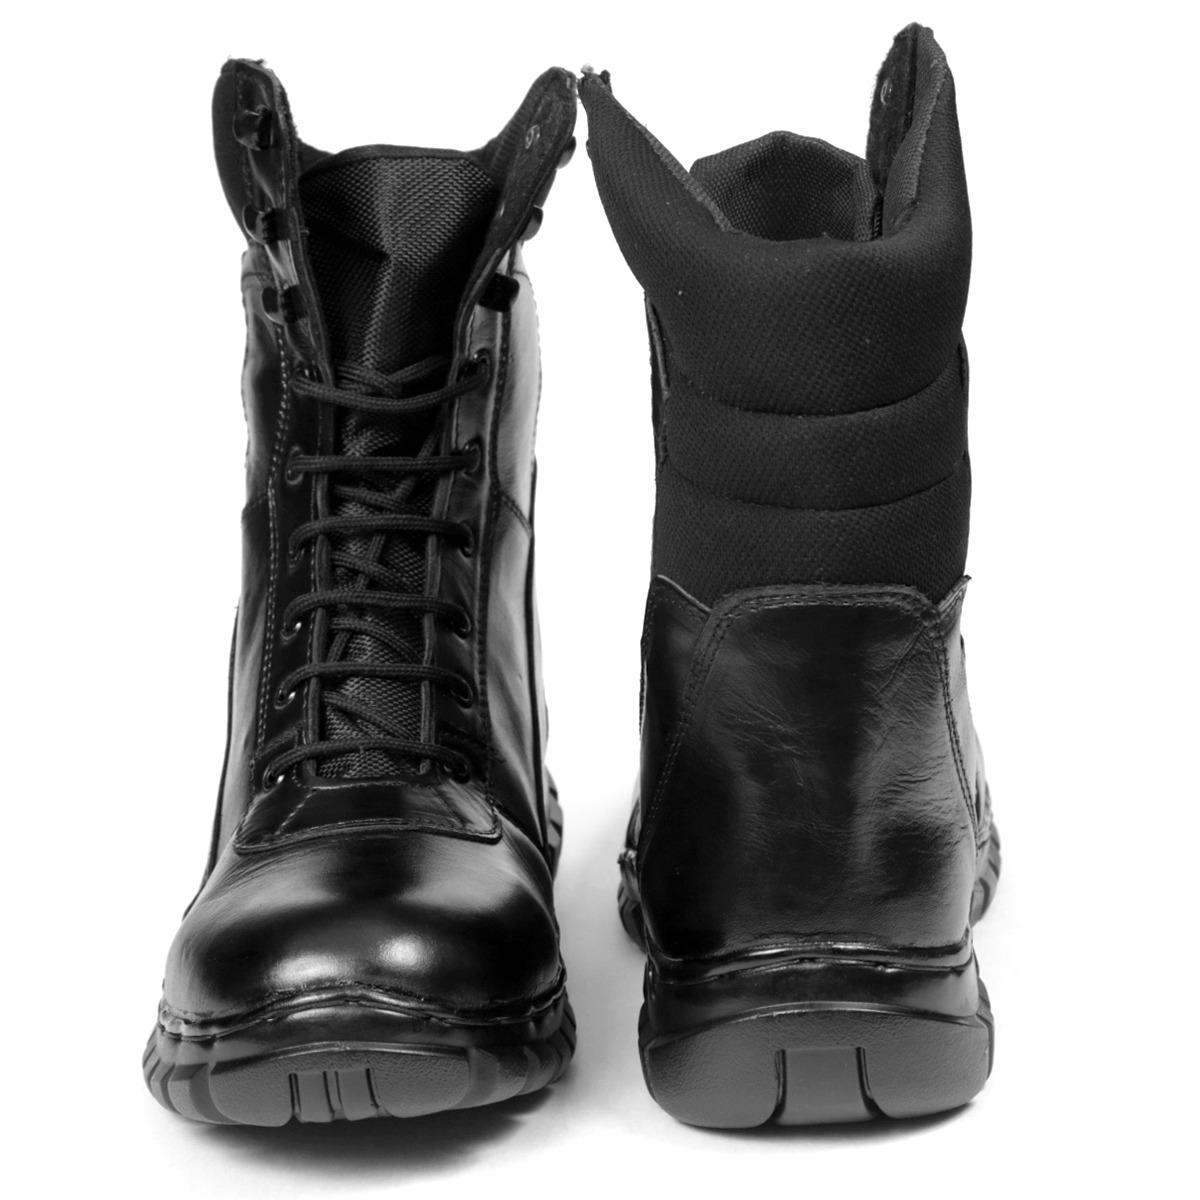 MEN'S ARMY BOOTS